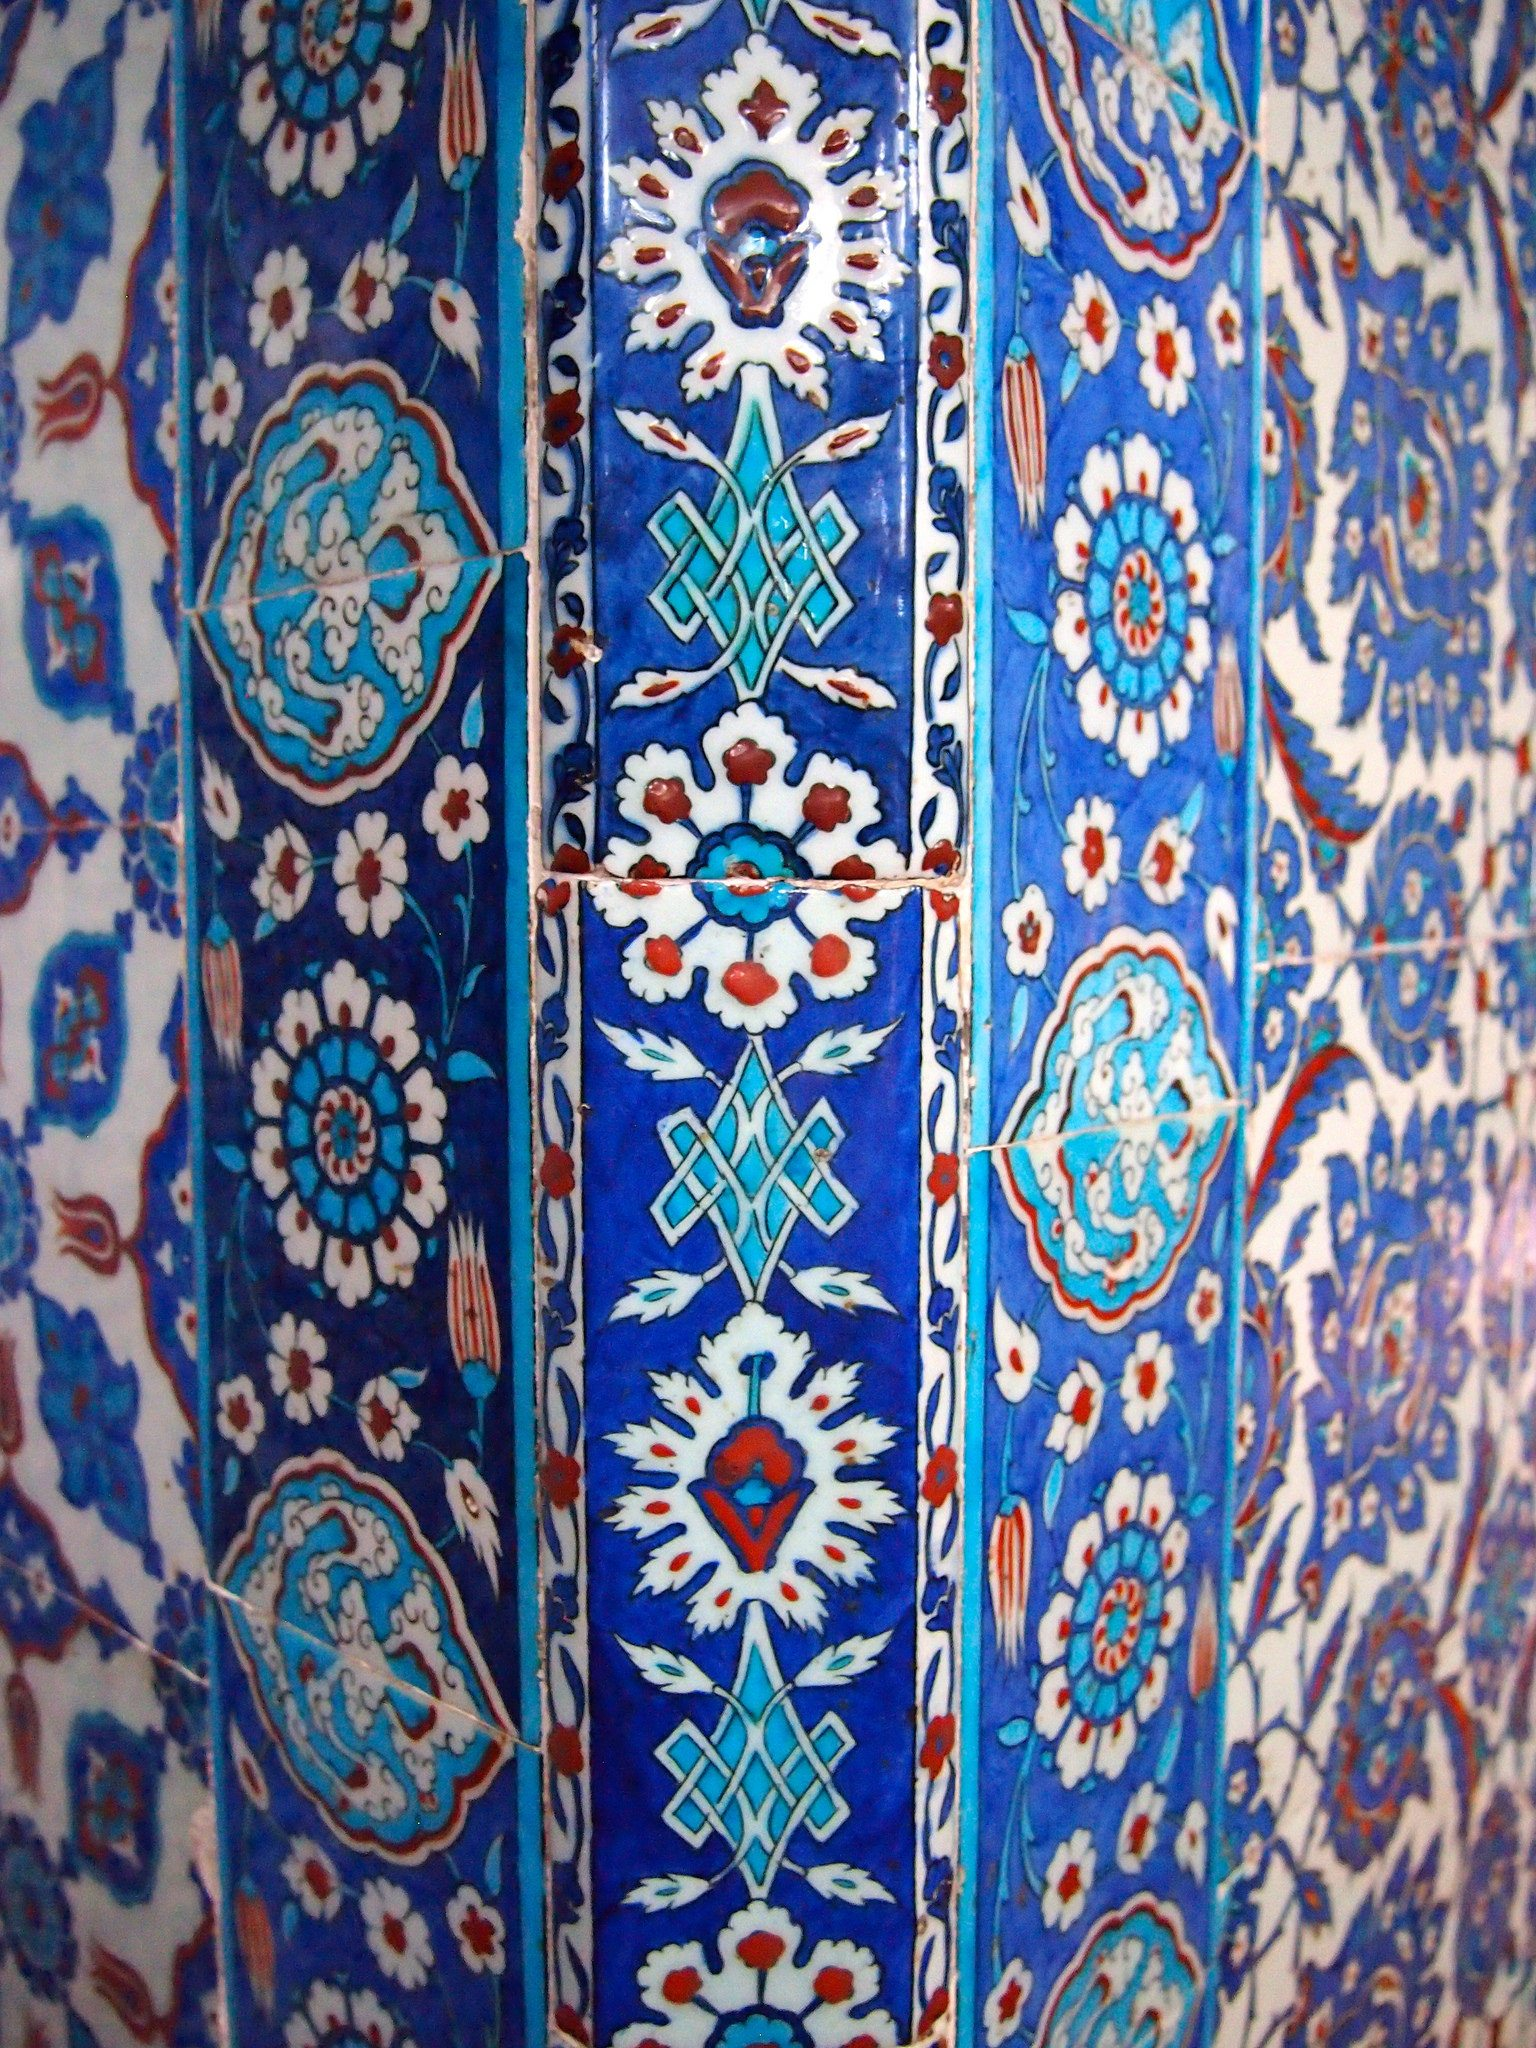 Mosque tiles in Istanbul, Turkey